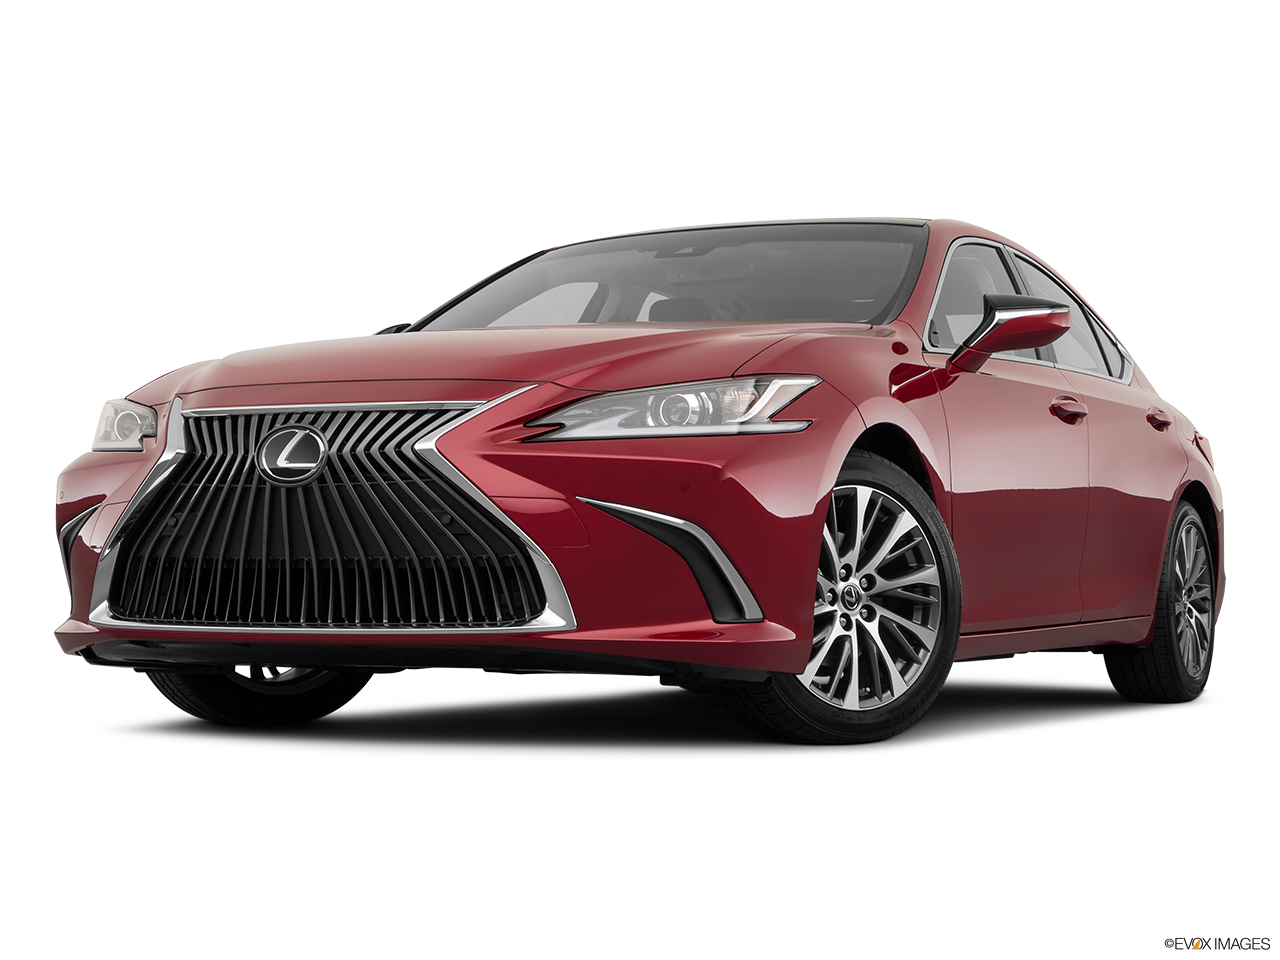 2020 Lexus ES 350 photo